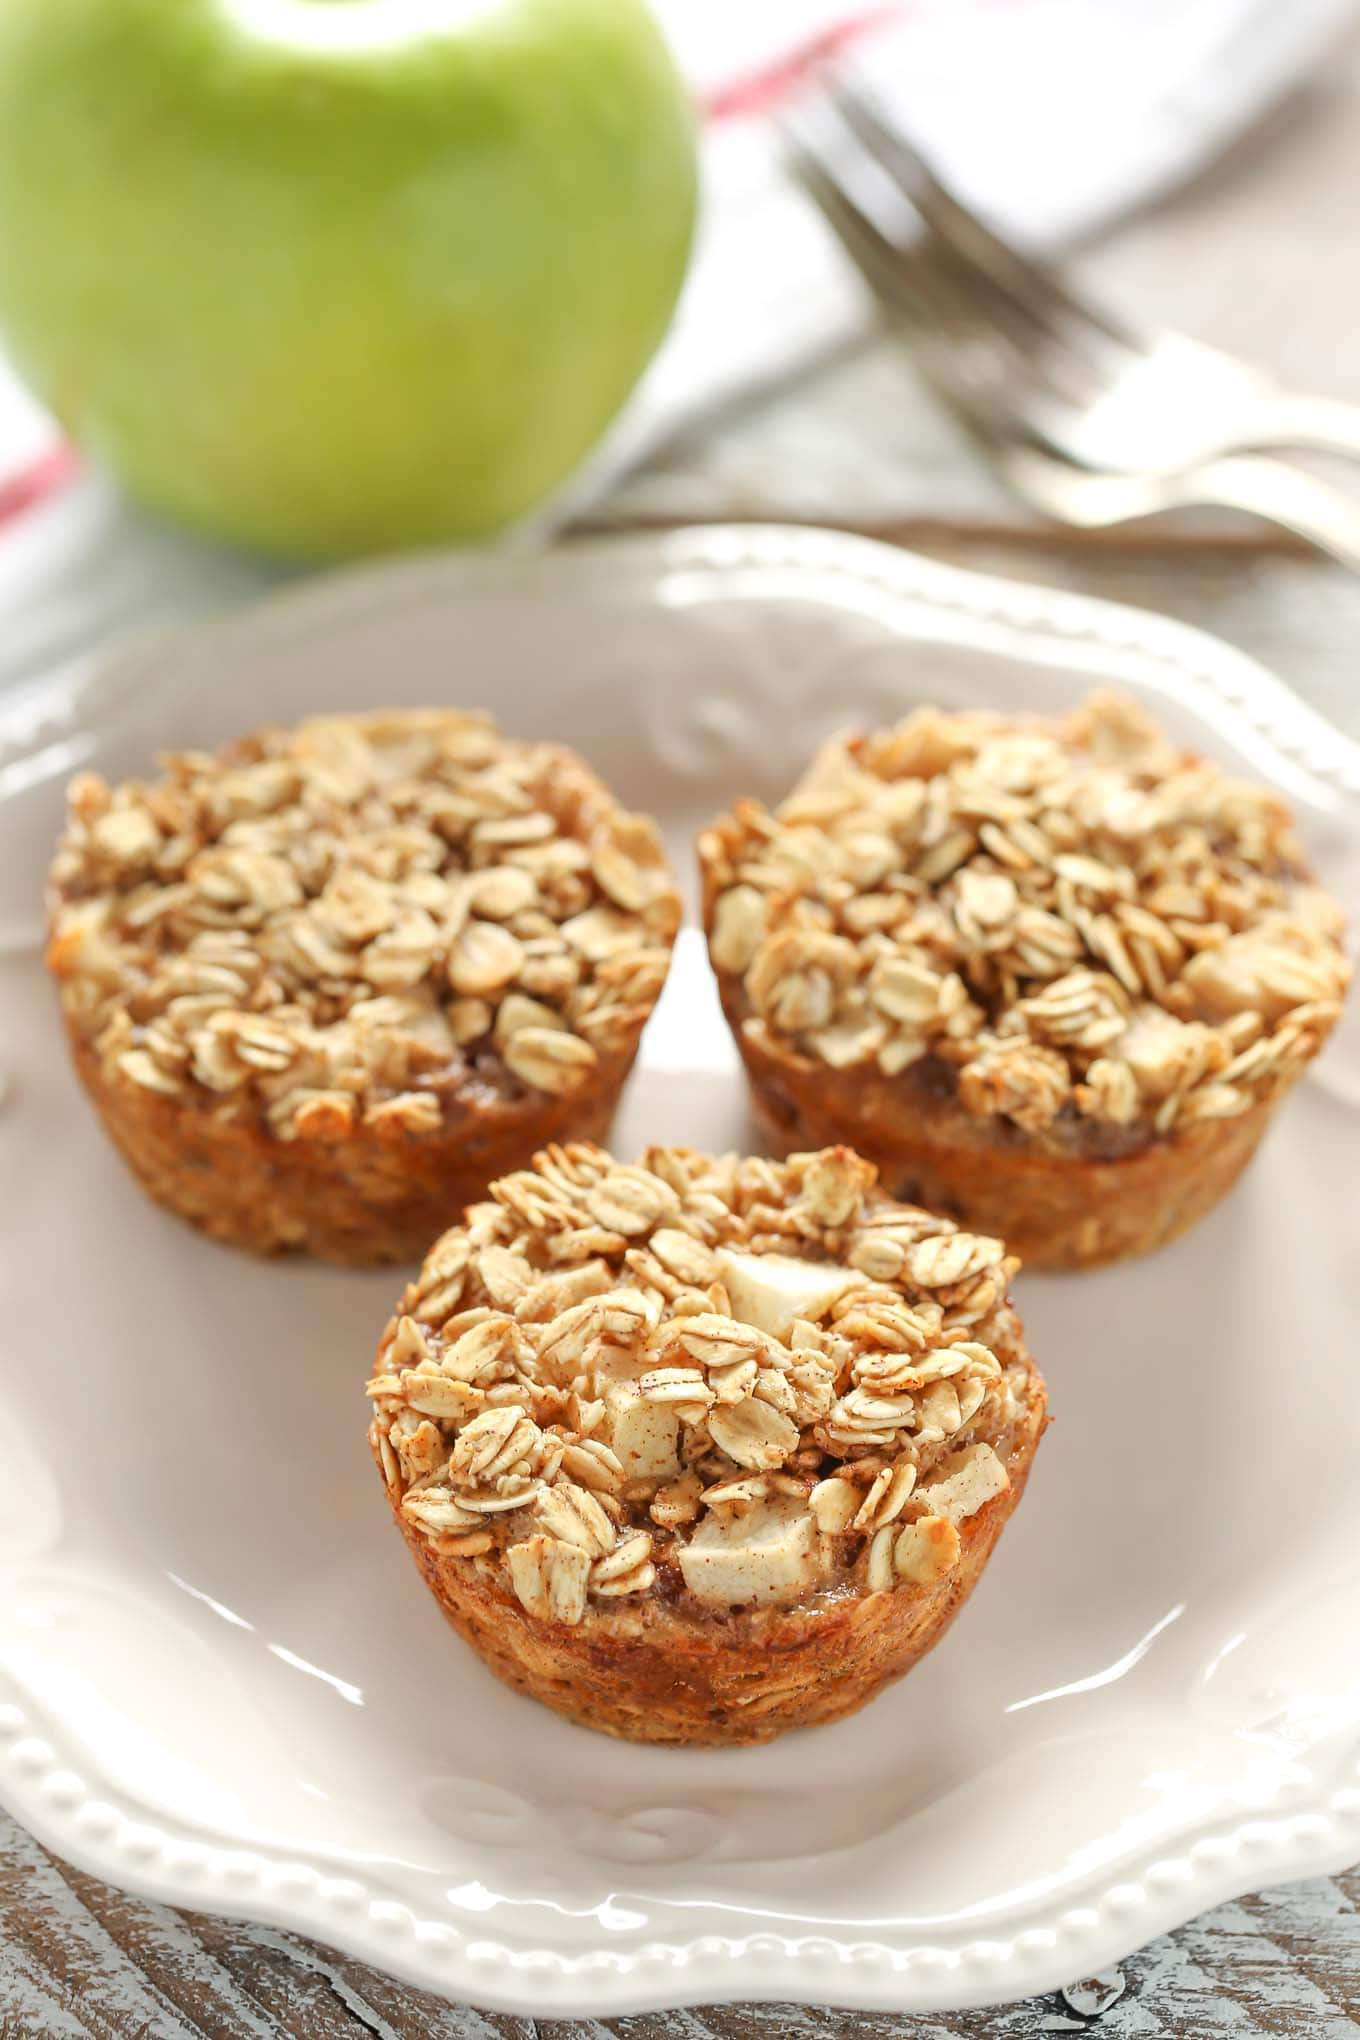 These easy Apple Cinnamon Baked Oatmeal Cups are perfect for an easy and healthy breakfast throughout